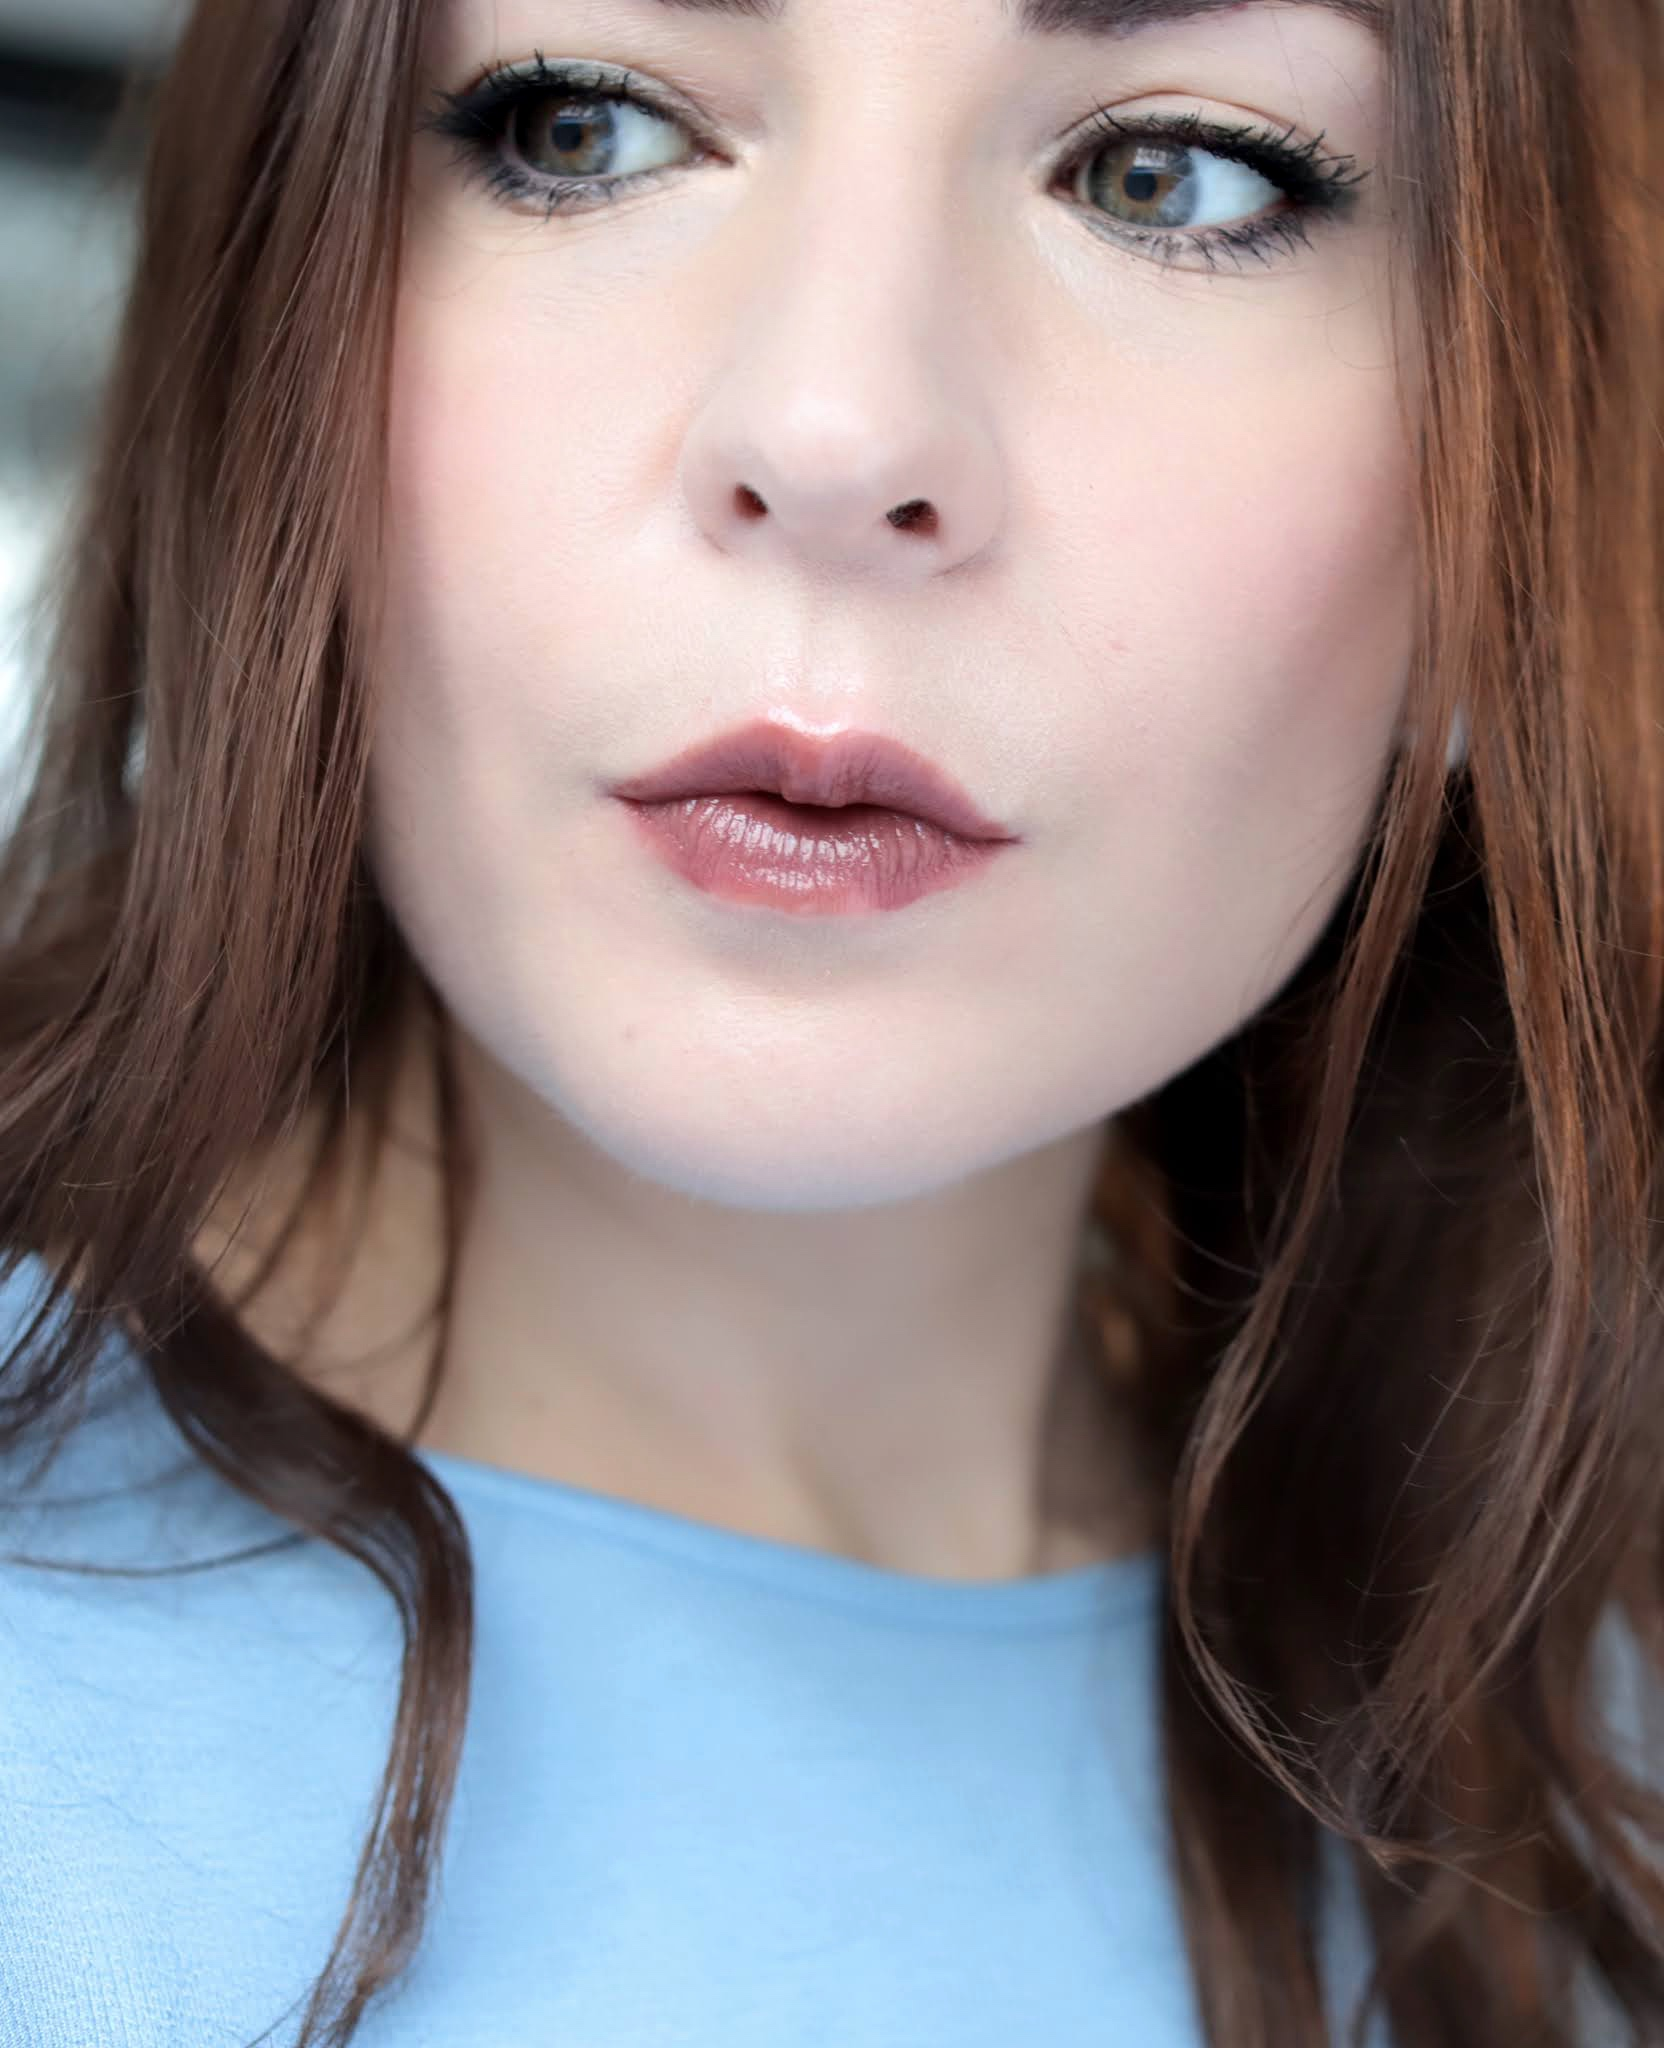 Chanel Rouge Coco Flash 134 Lust